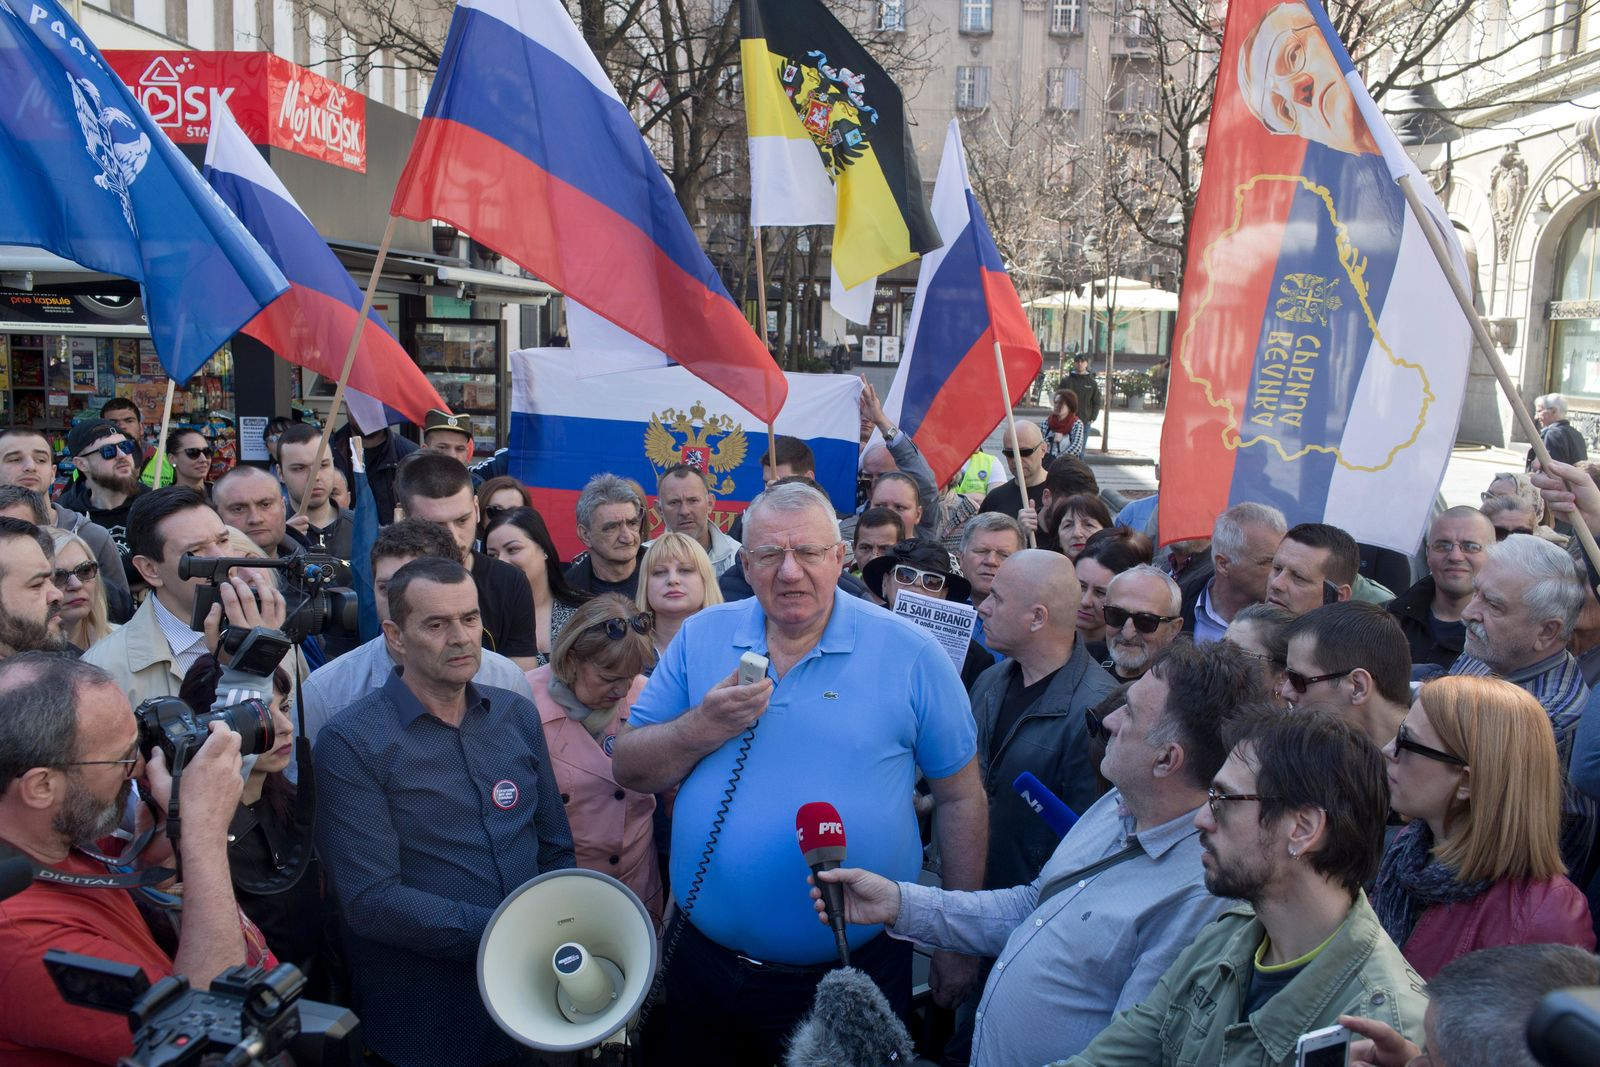 Vojislav Seselj, center, the leader of the ultranationalist Serbian Radical Party, speaks to his supporters over a megaphone during a protest in Belgrade, Serbia, Sunday, March 24, 2019.{ } (AP Photo/Marko Drobnjakovic)